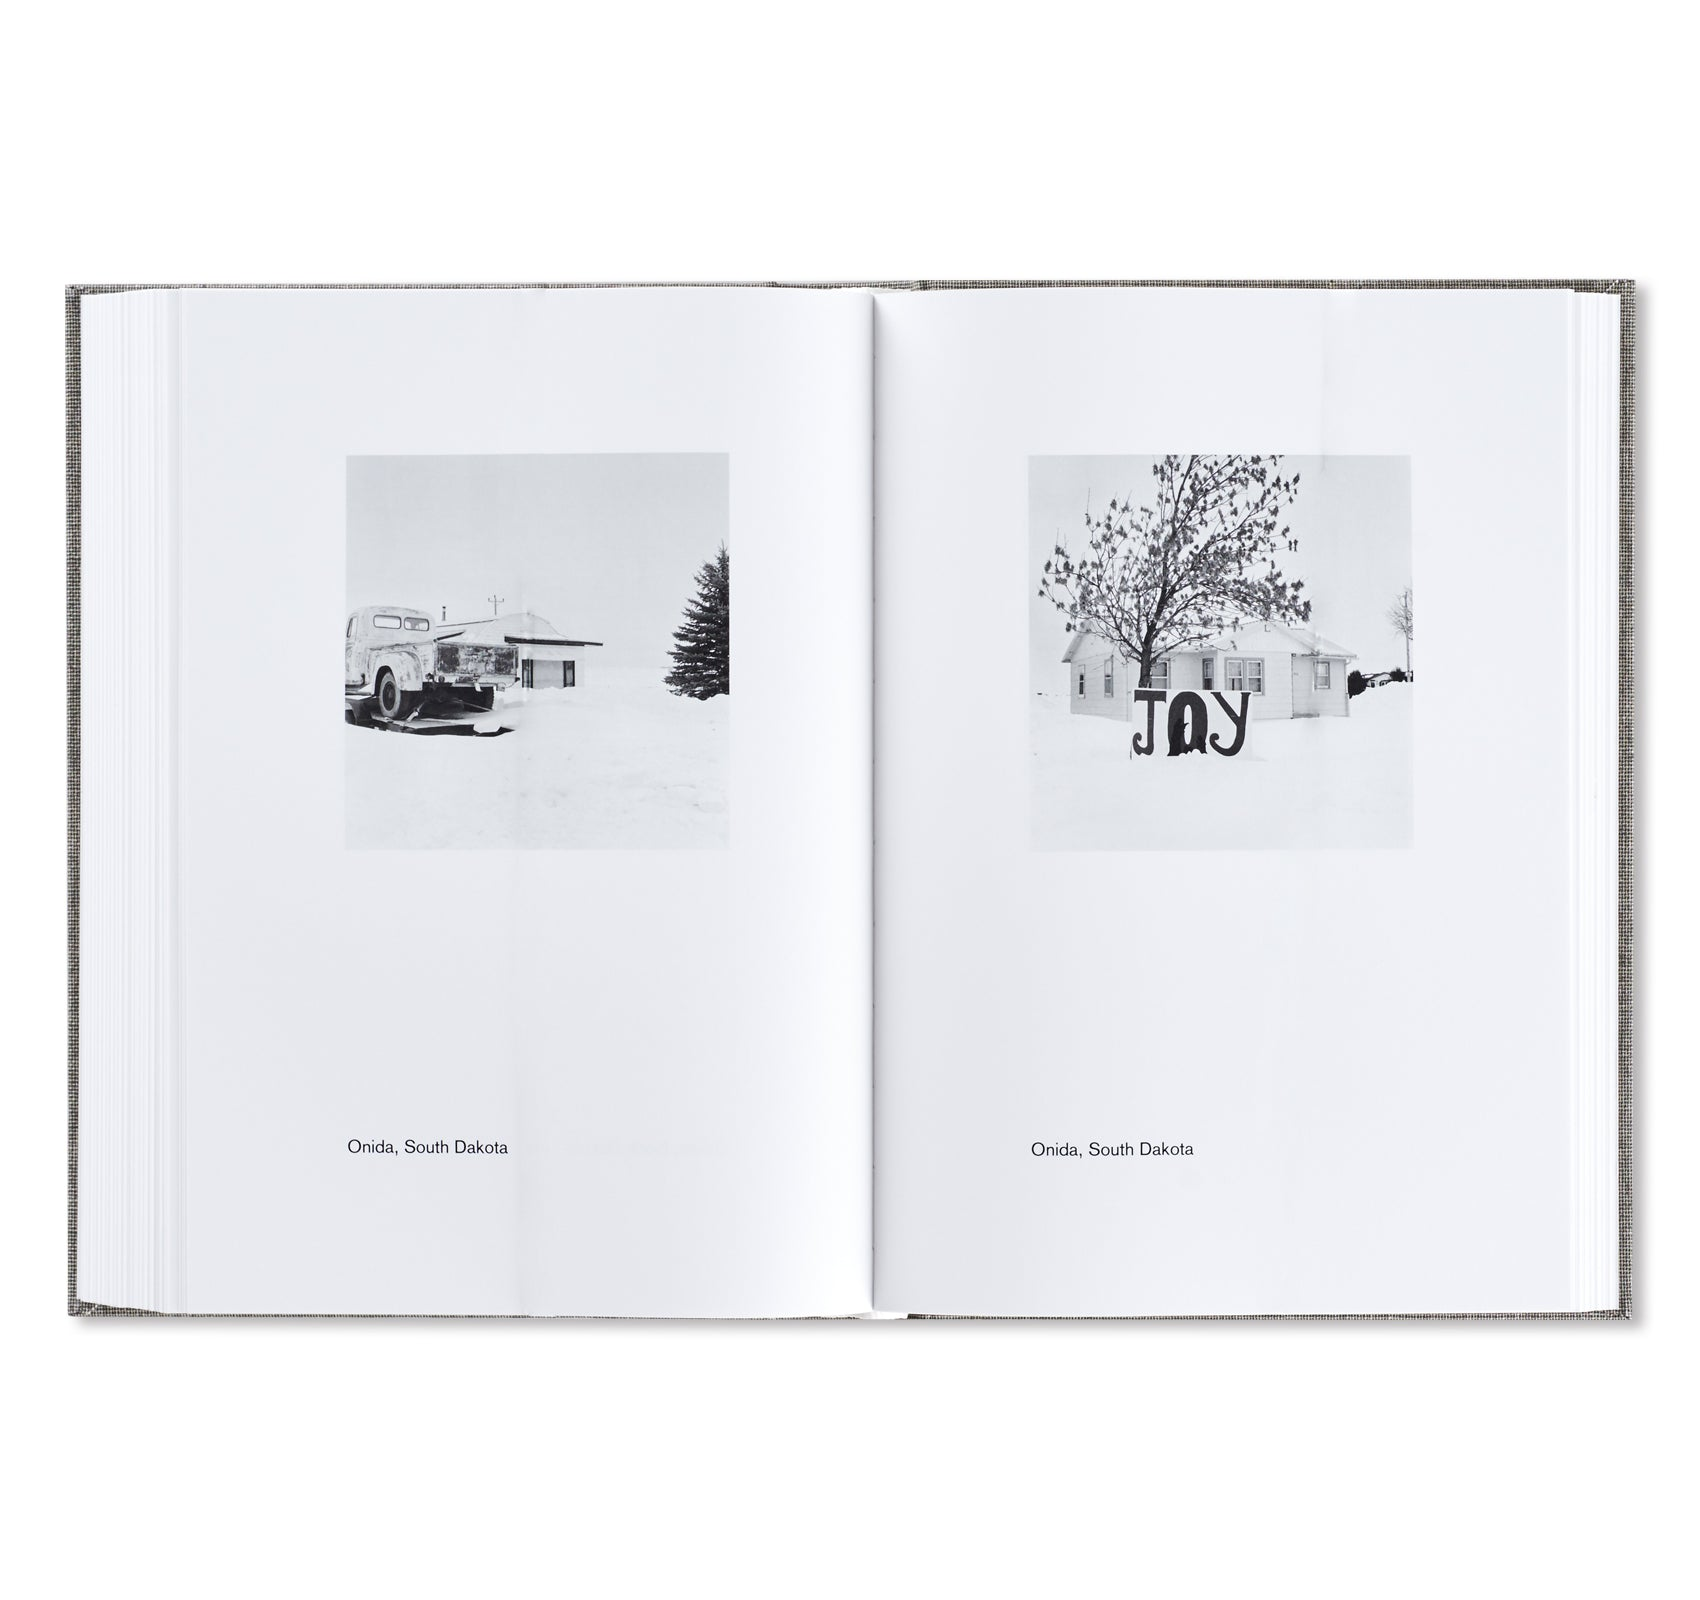 AMERICAN WINTER by Gerry Johansson [SPECIAL EDITION]